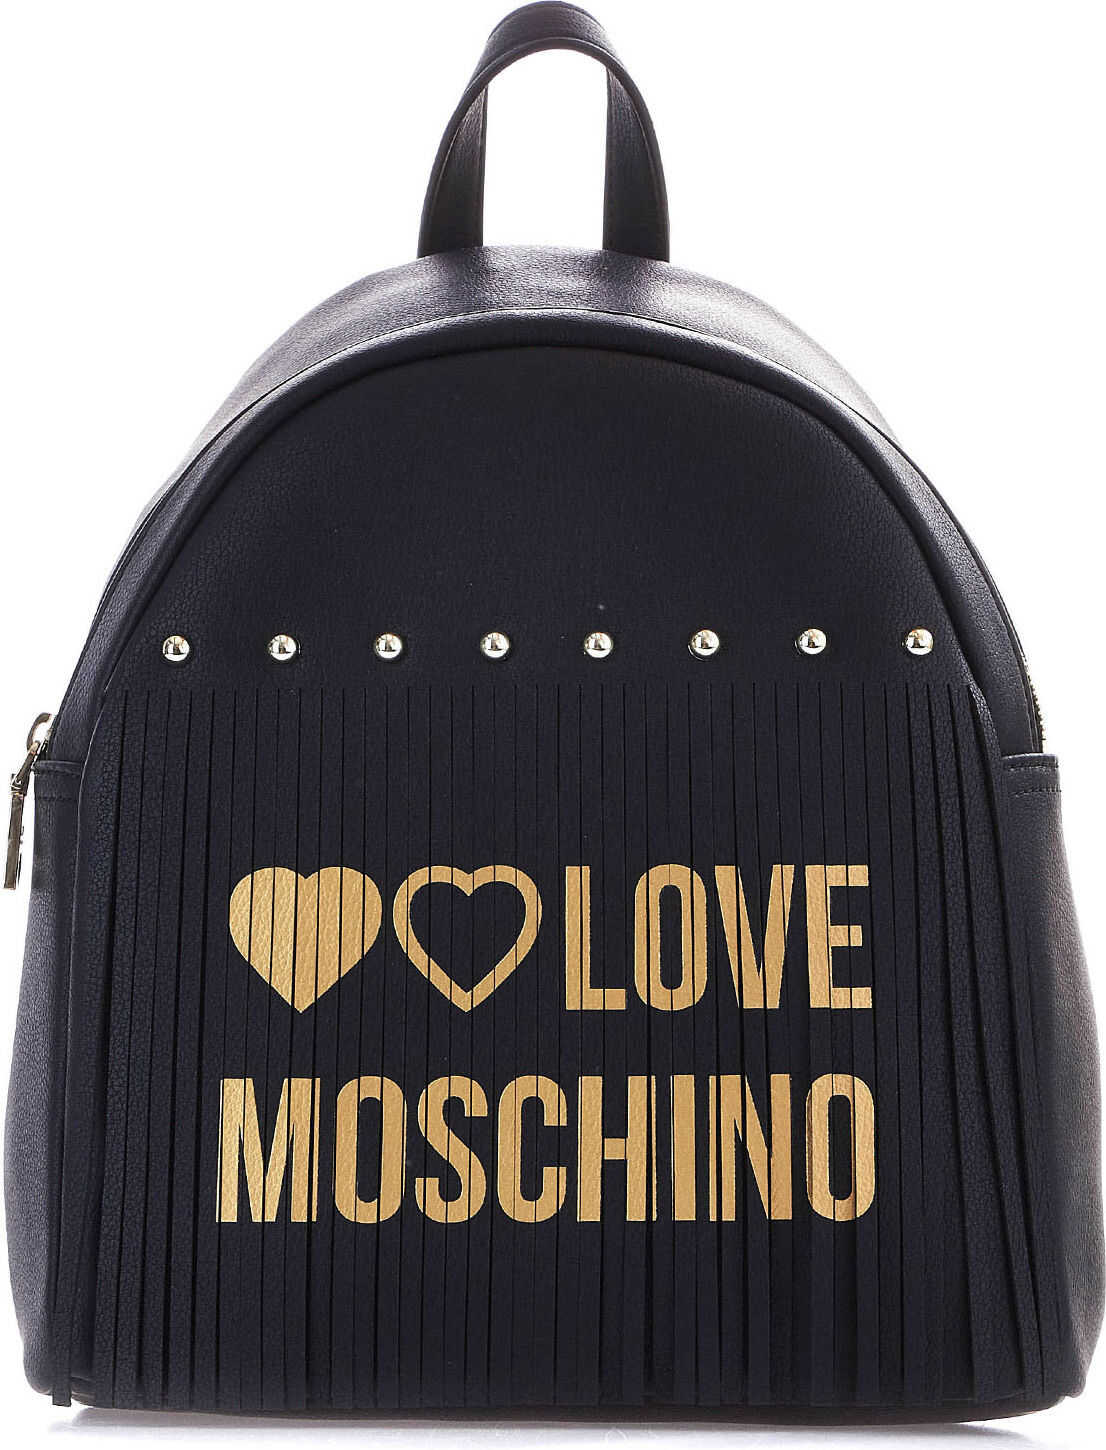 LOVE Moschino Backpack with fringe detail Black